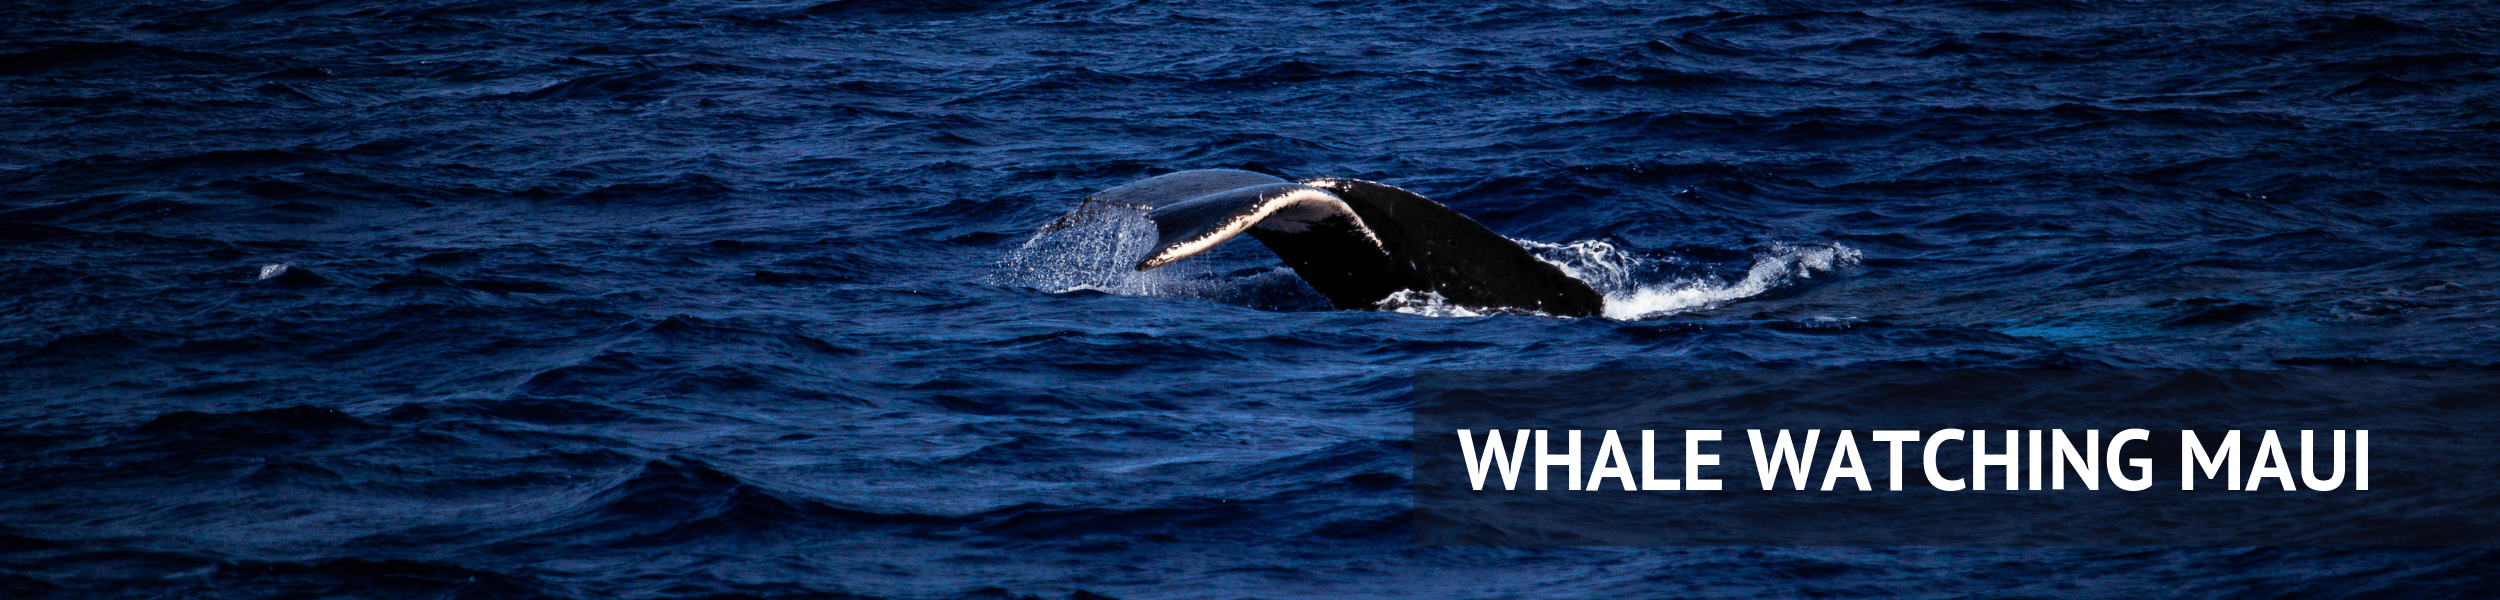 When Is Whale Watching Season On Maui, Hawaii